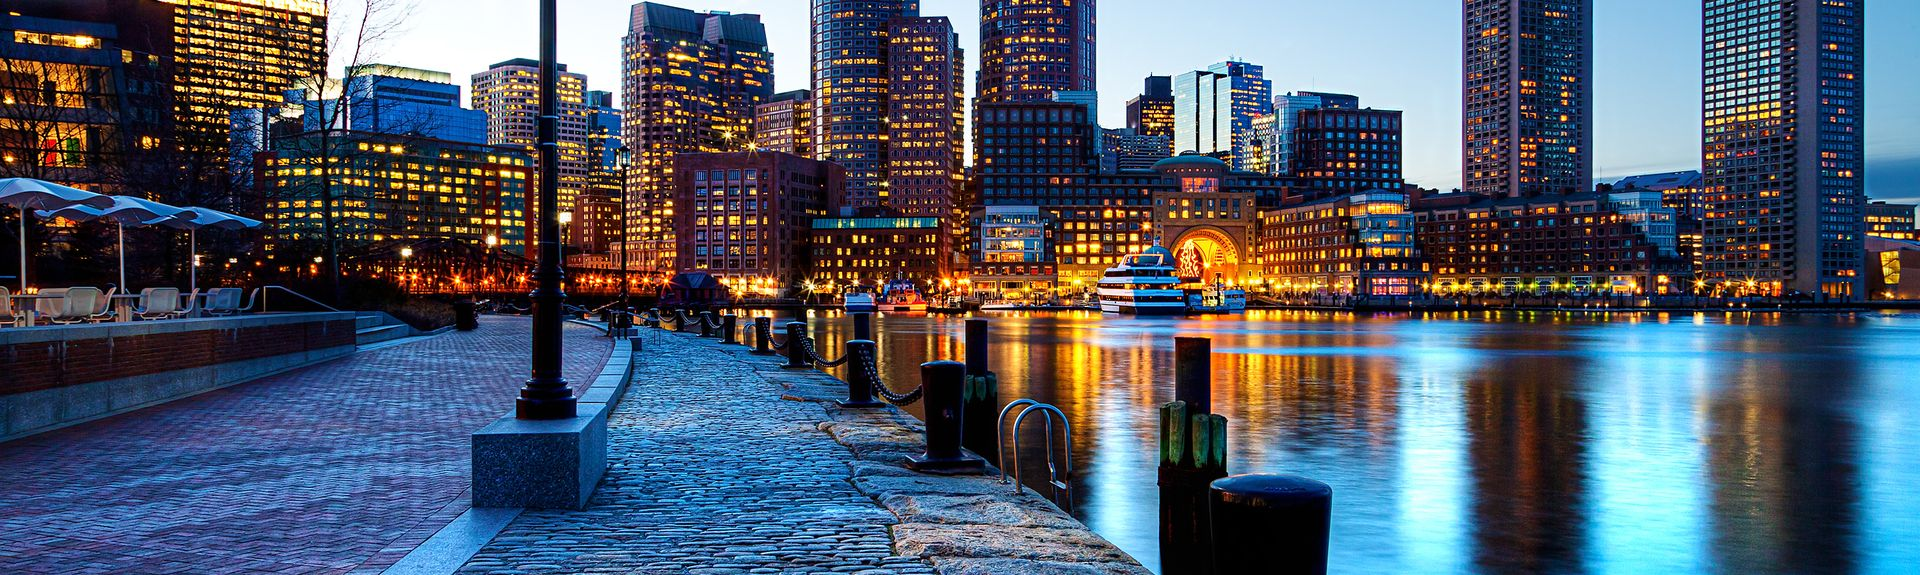 Downtown Boston, Boston, Massachusetts, United States of America